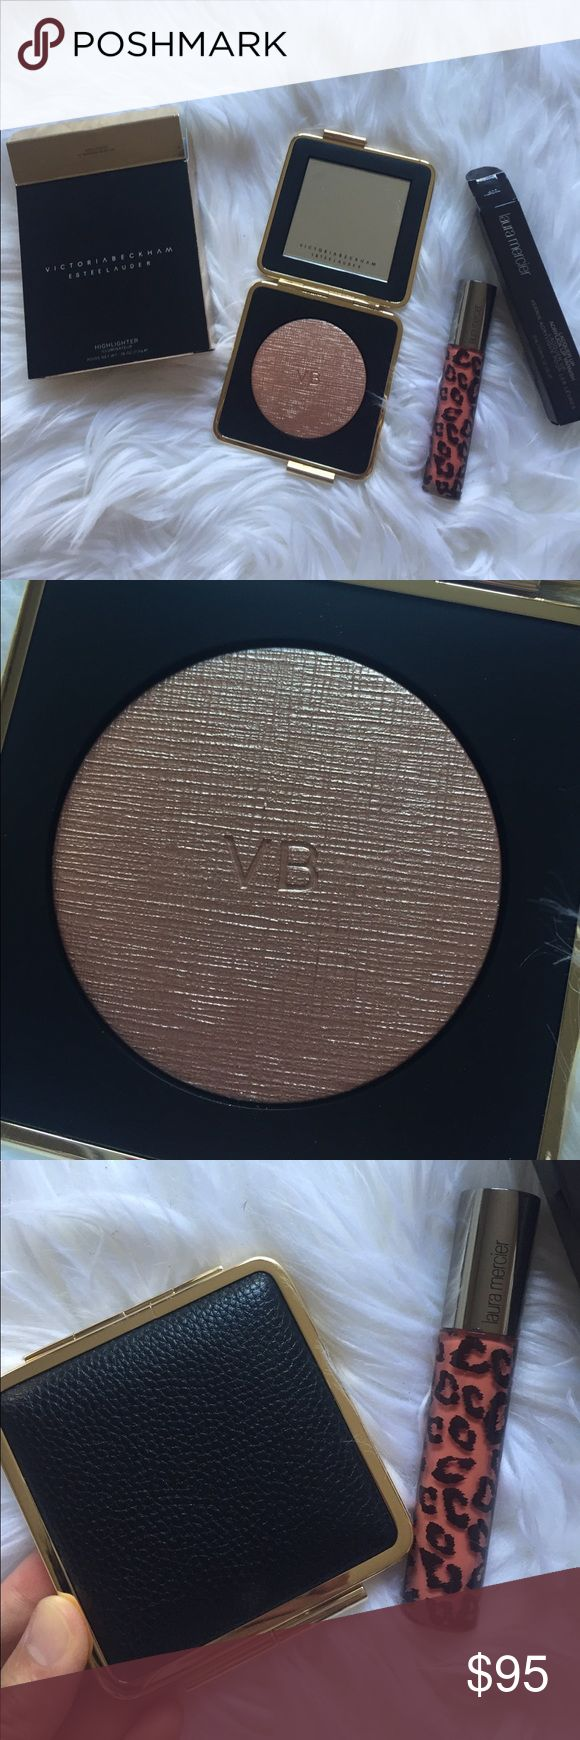 Estée Lauder Victoria Beckham highlighter Full size new. In perfect new condition. 01 modern mercury. $75. Free gift - Laura mercier acrylic lip varnish in soleil. $29. Sell only in bundle. No trades. Price firm. Estee Lauder Makeup Luminizer